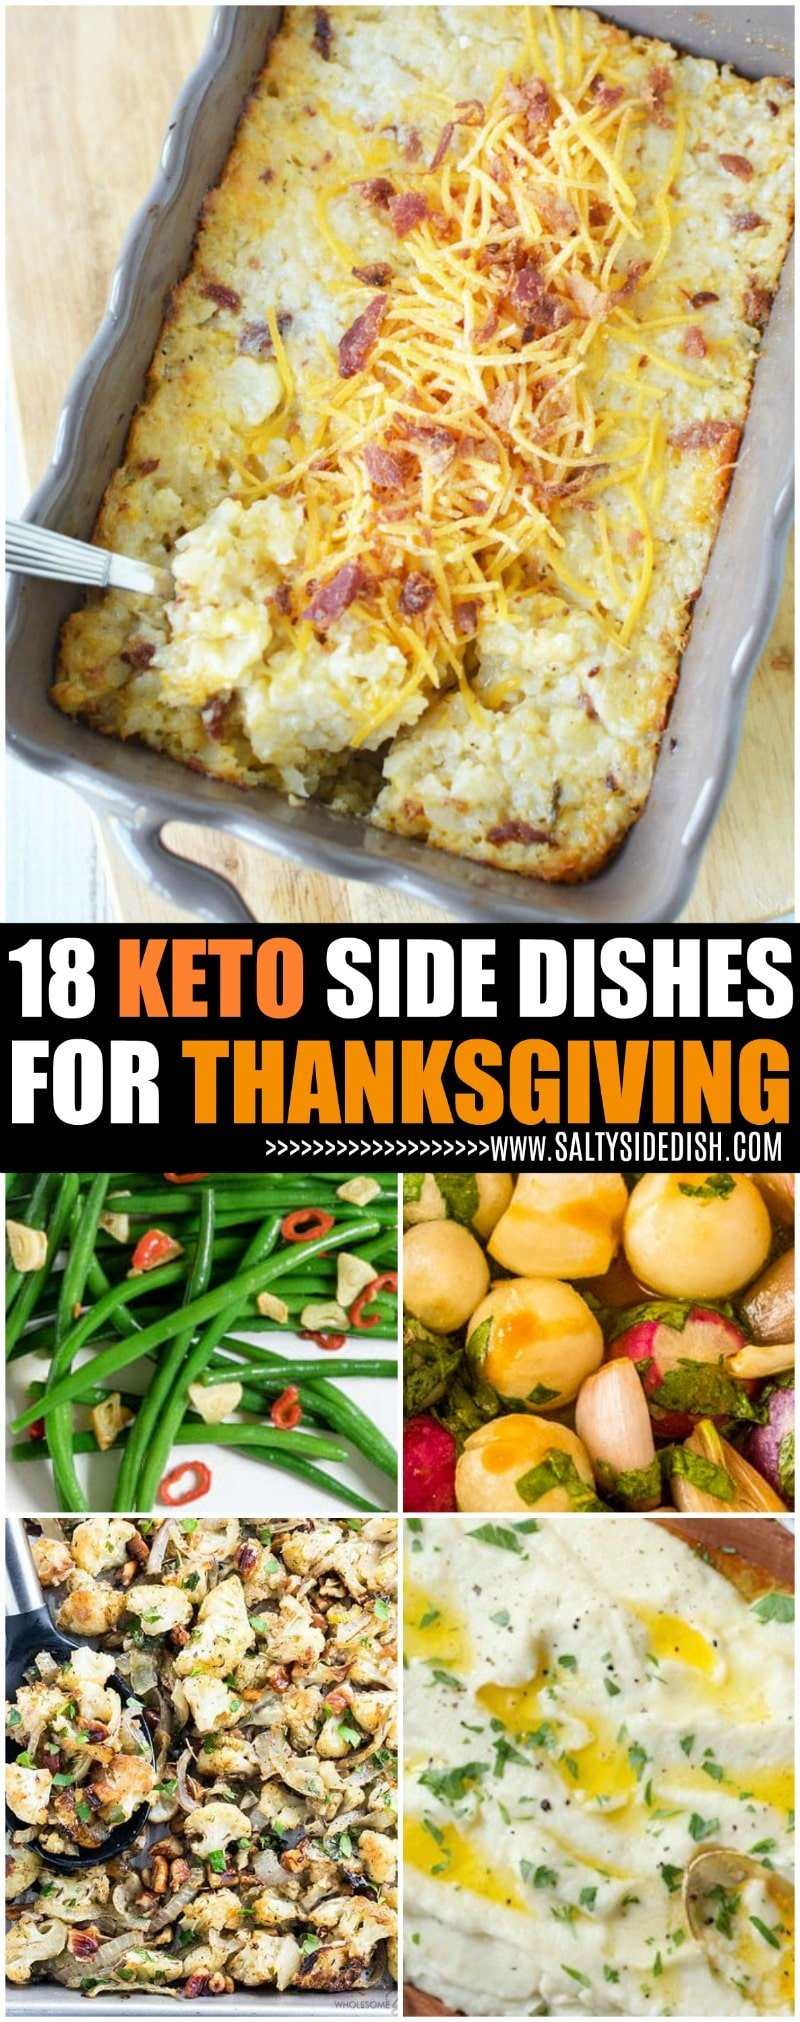 18 Delicious Keto Thanksgiving Sides